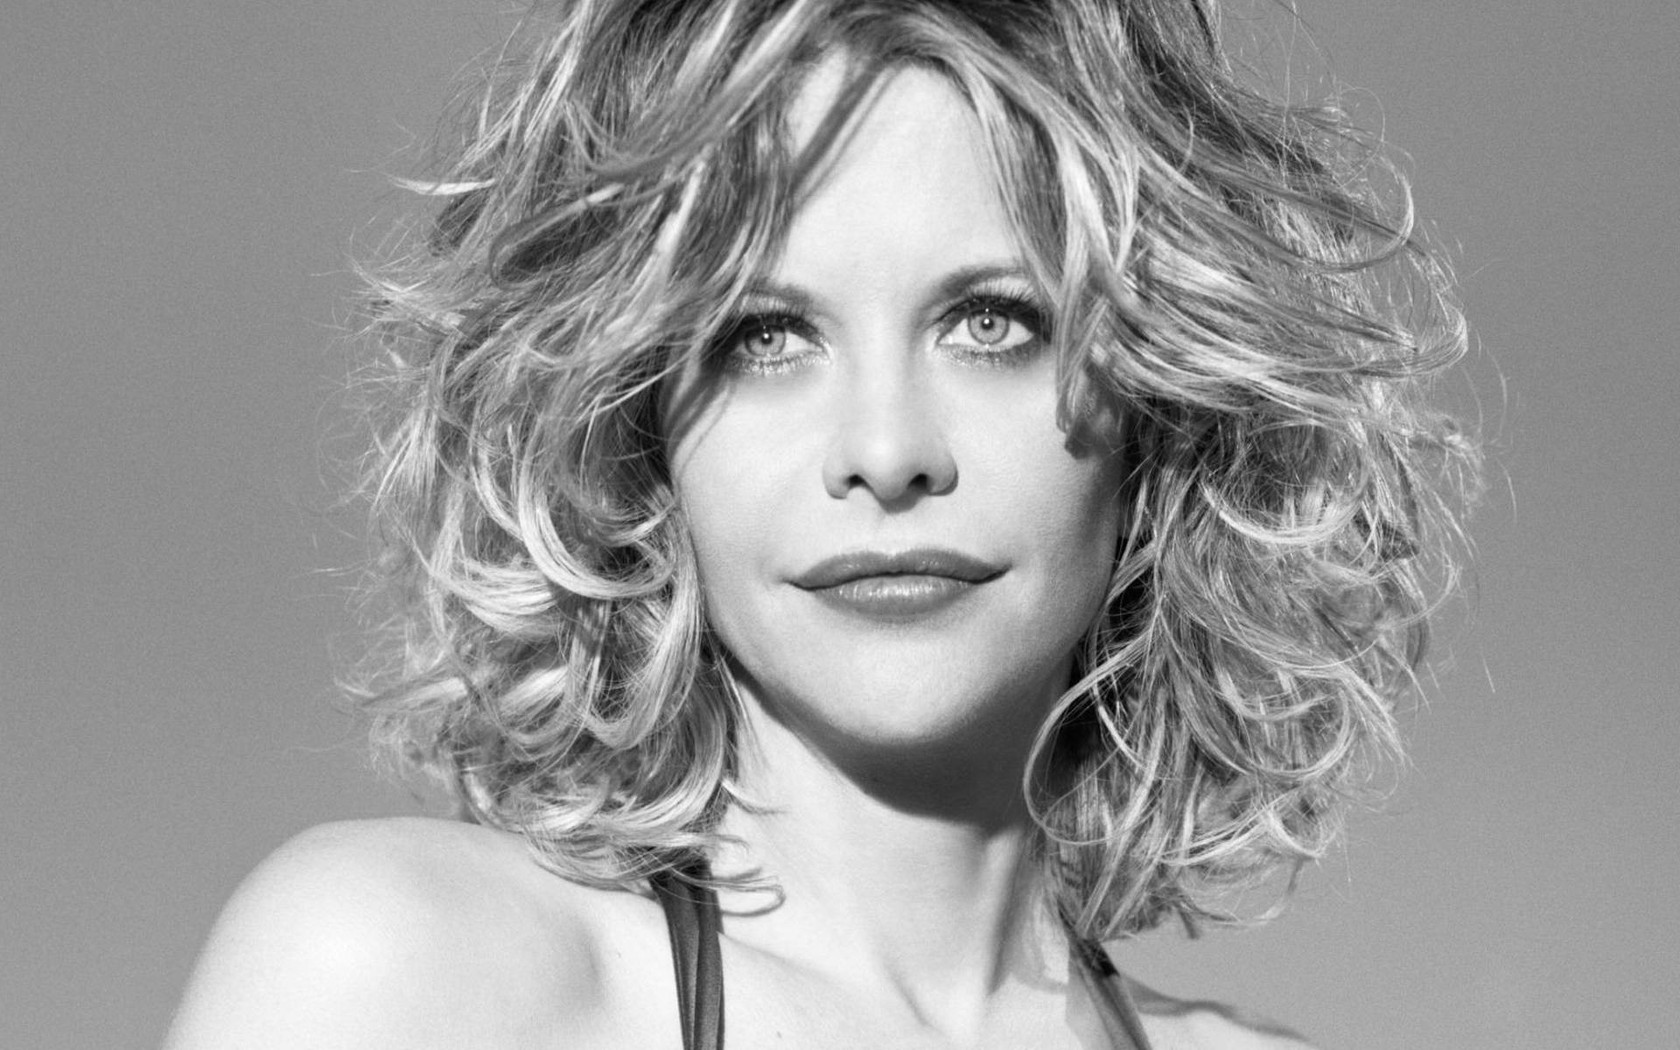 monochrome meg ryan wallpaper 59300